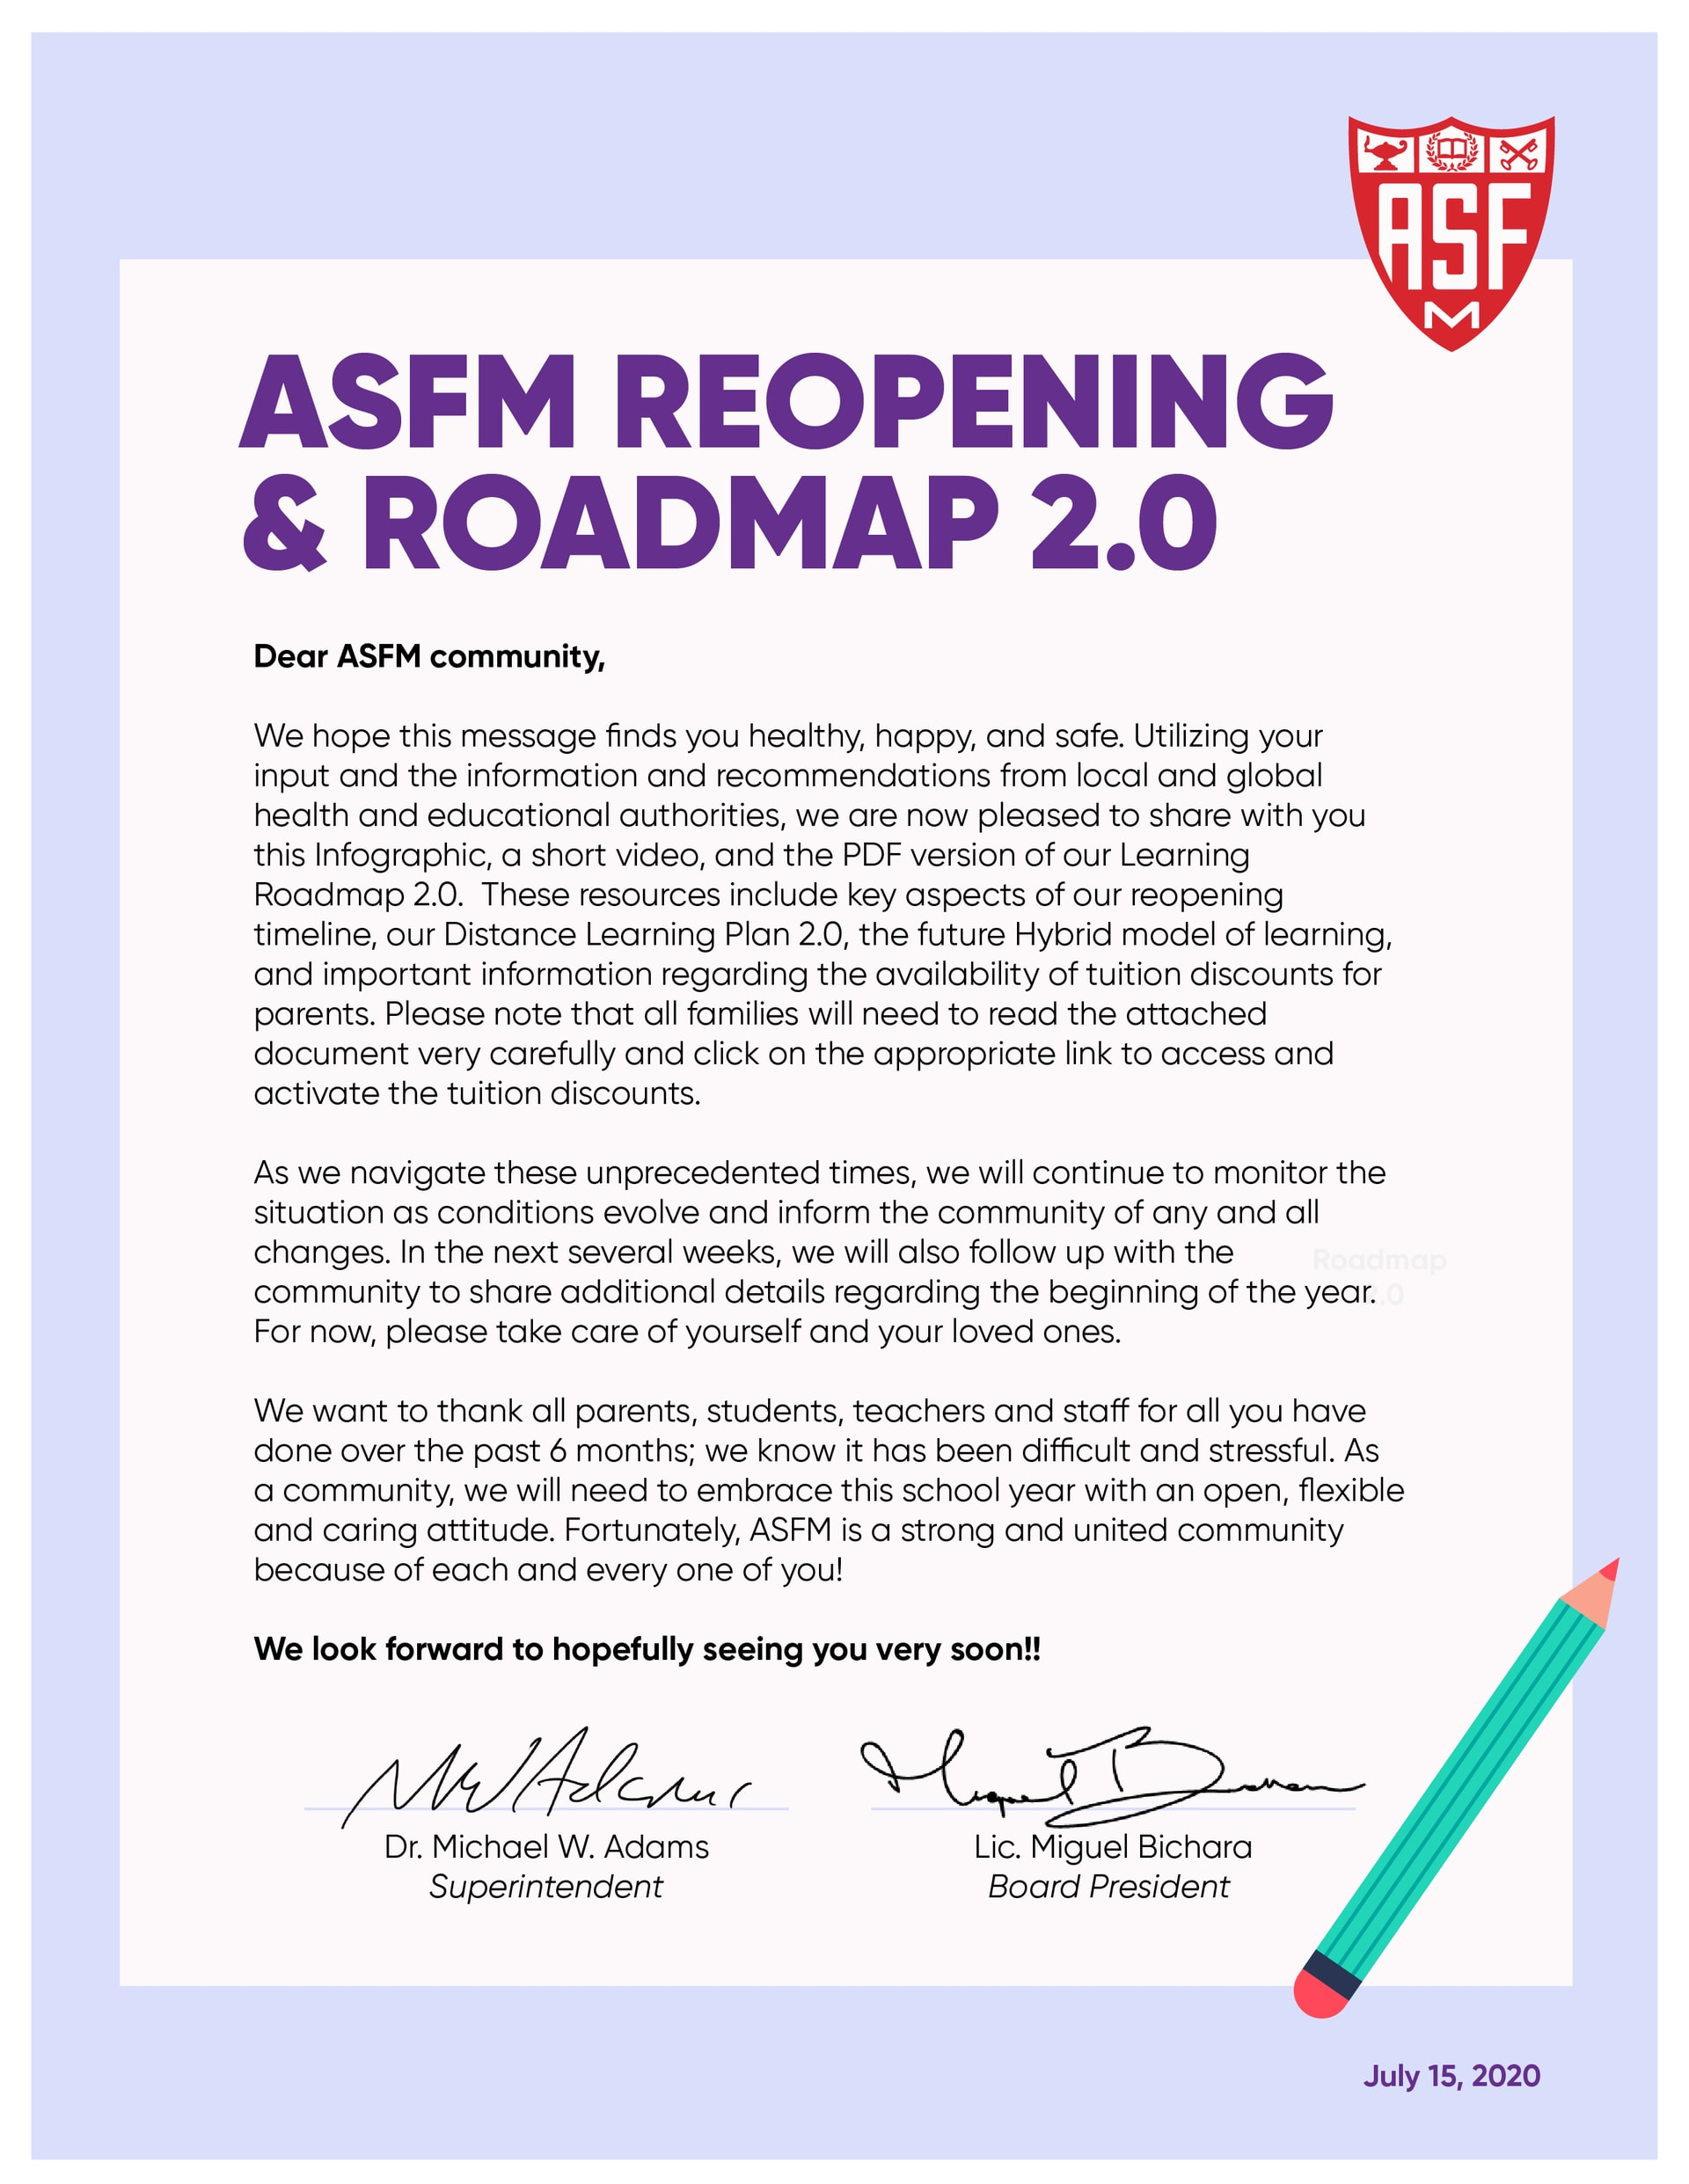 Letter to the ASFM Community